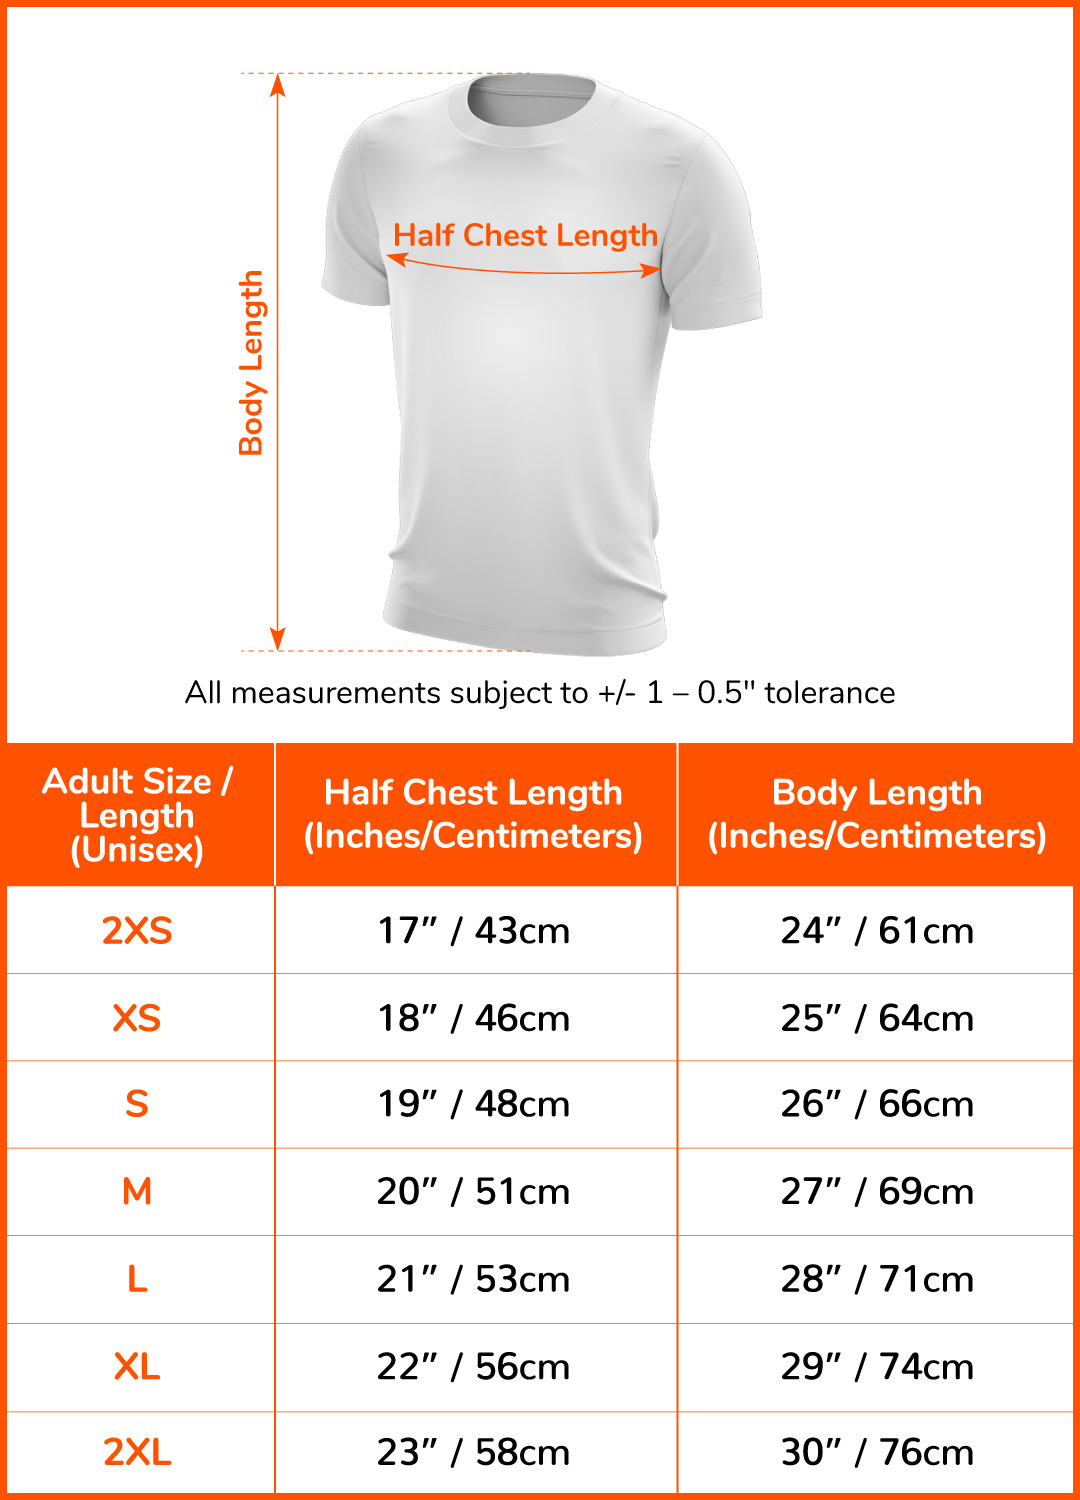 Finisher T-Shirt - 12.2km#size-chart